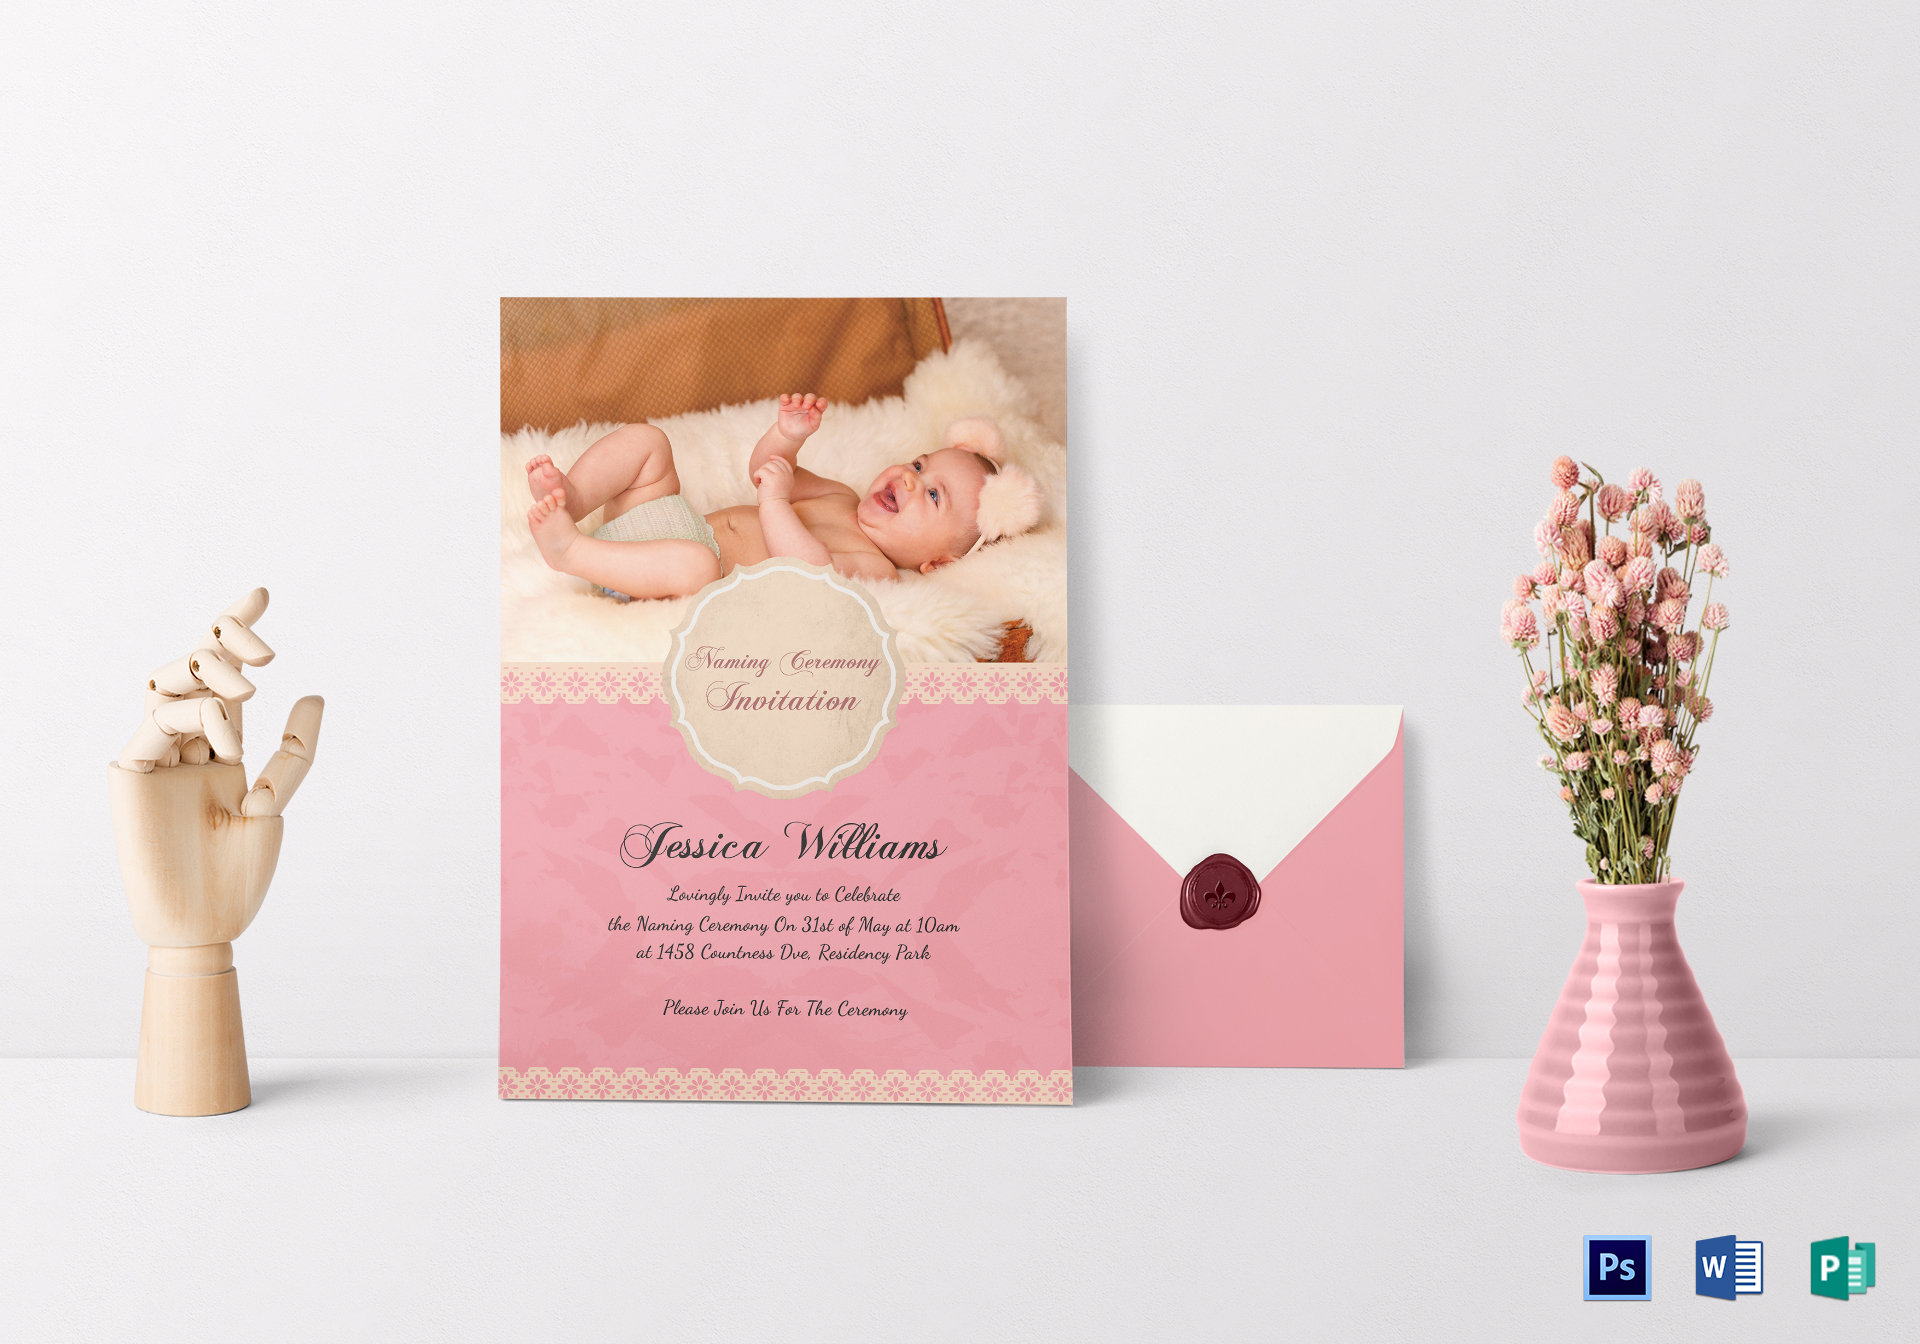 Happy Baby Naming Ceremony Invitation Card Design Template In Psd